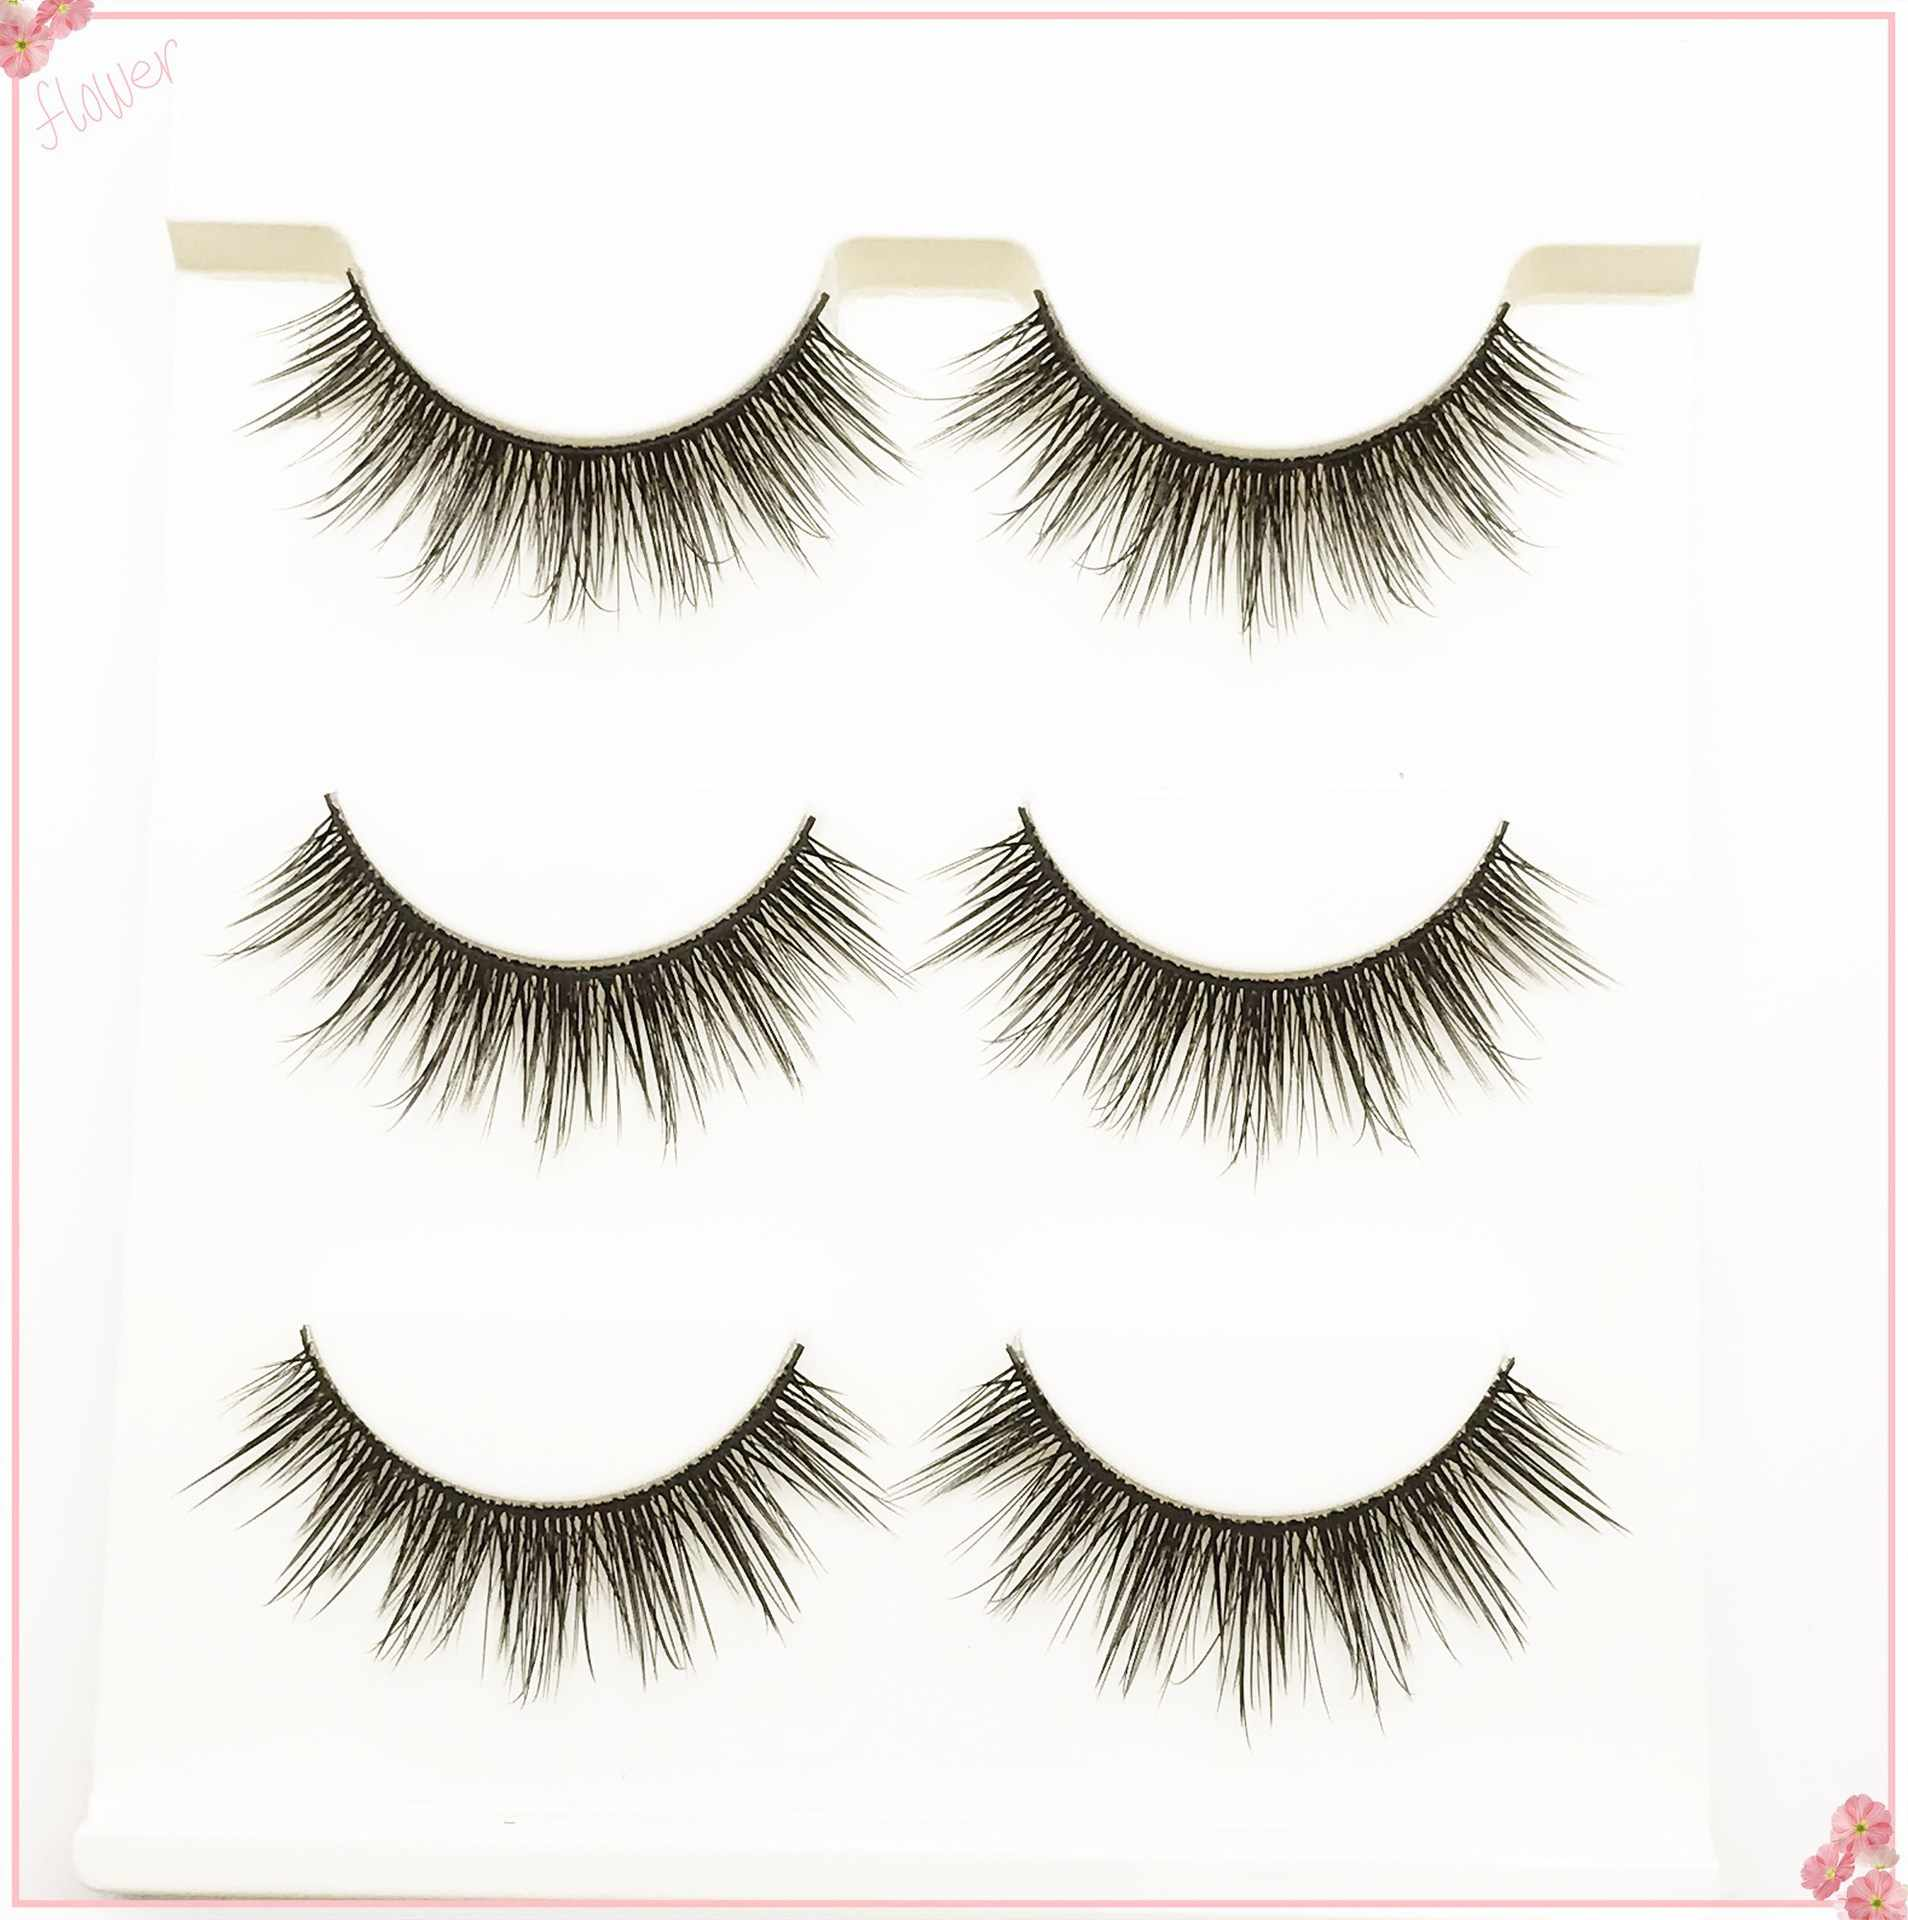 770fd136833 2019 new 3 pairs natural false eyelashes fake lashes long makeup 3d mink  lashes extension eyelash